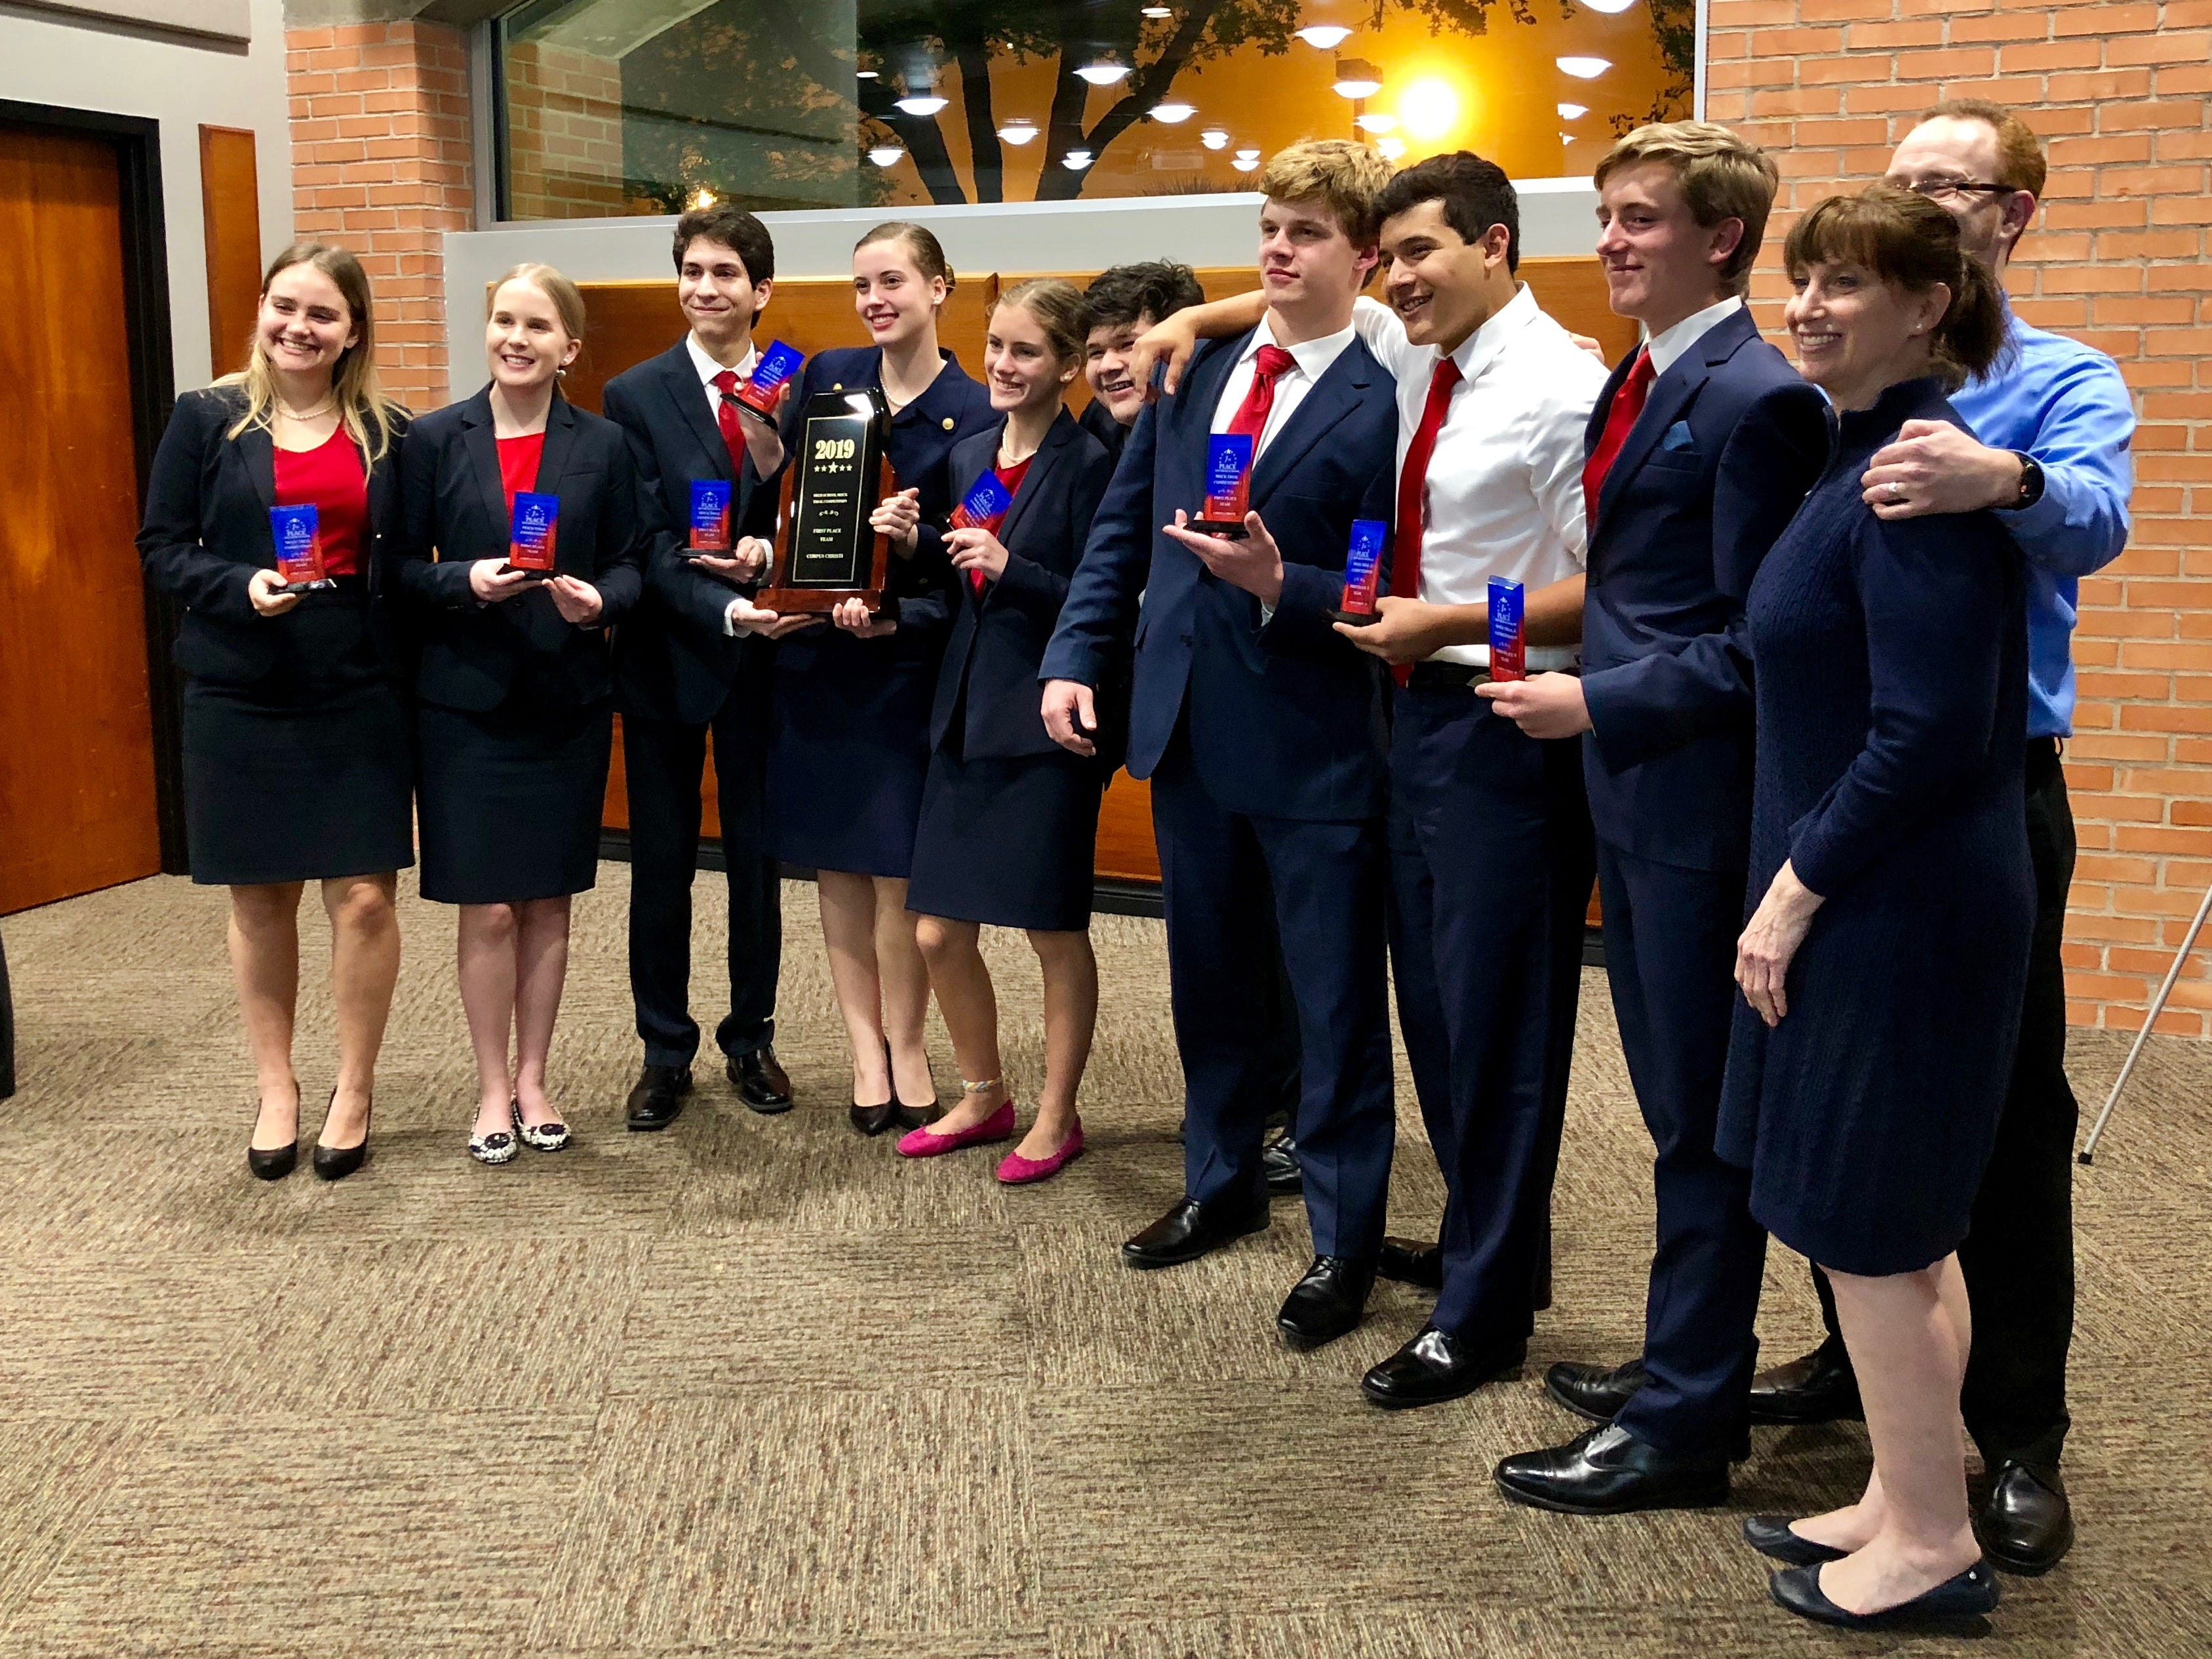 Students from Ray High School placed first in the 2019 mock trial competition.